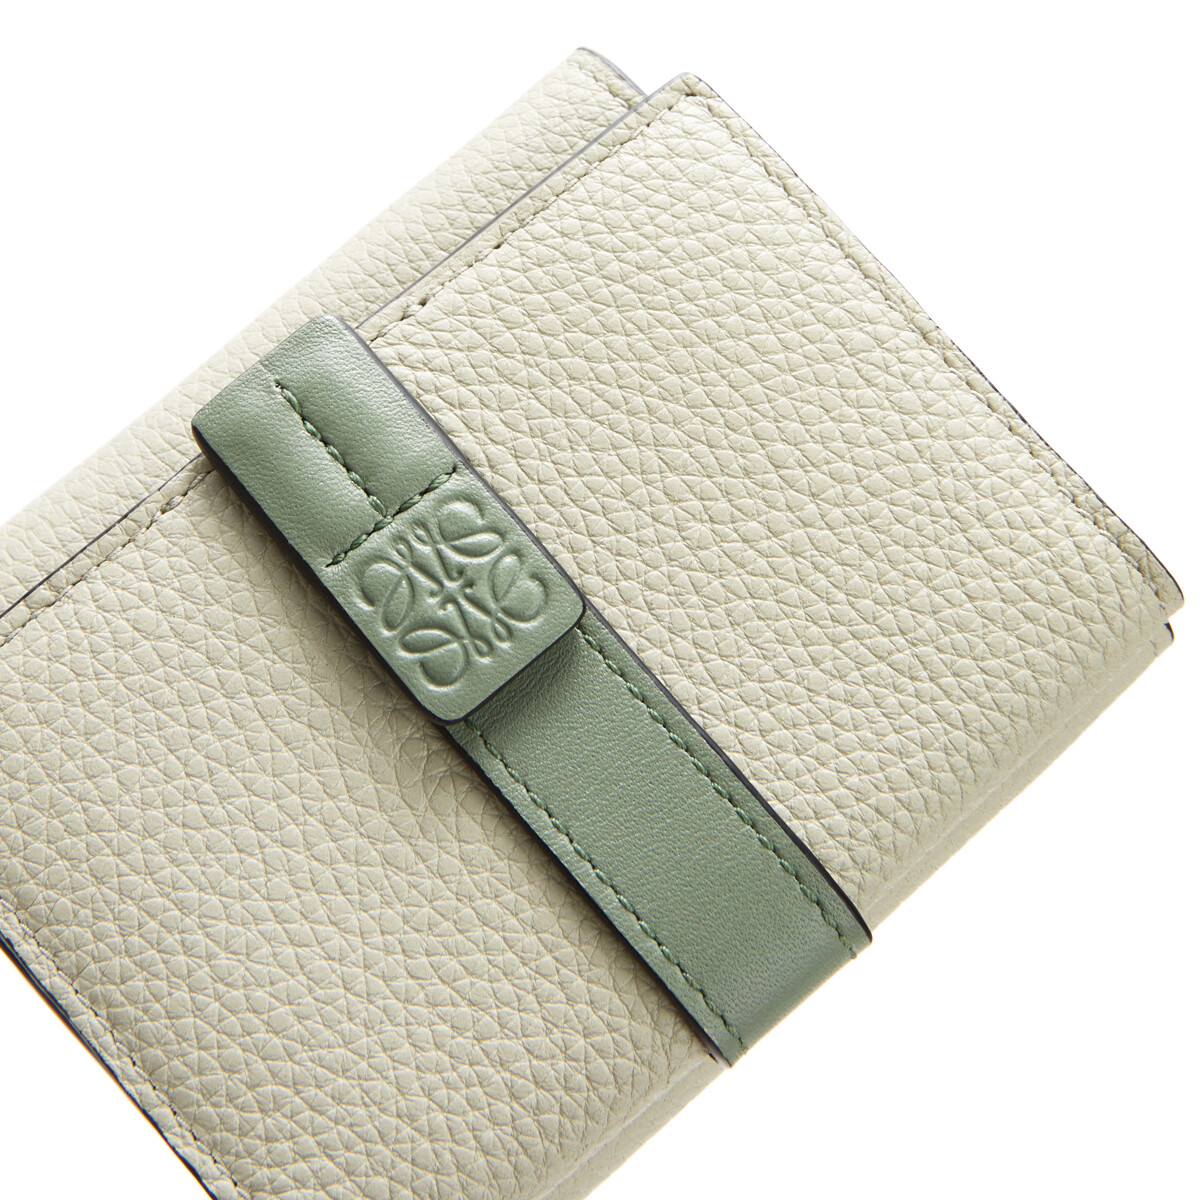 LOEWE Trifold Wallet Sage/Pale Green front